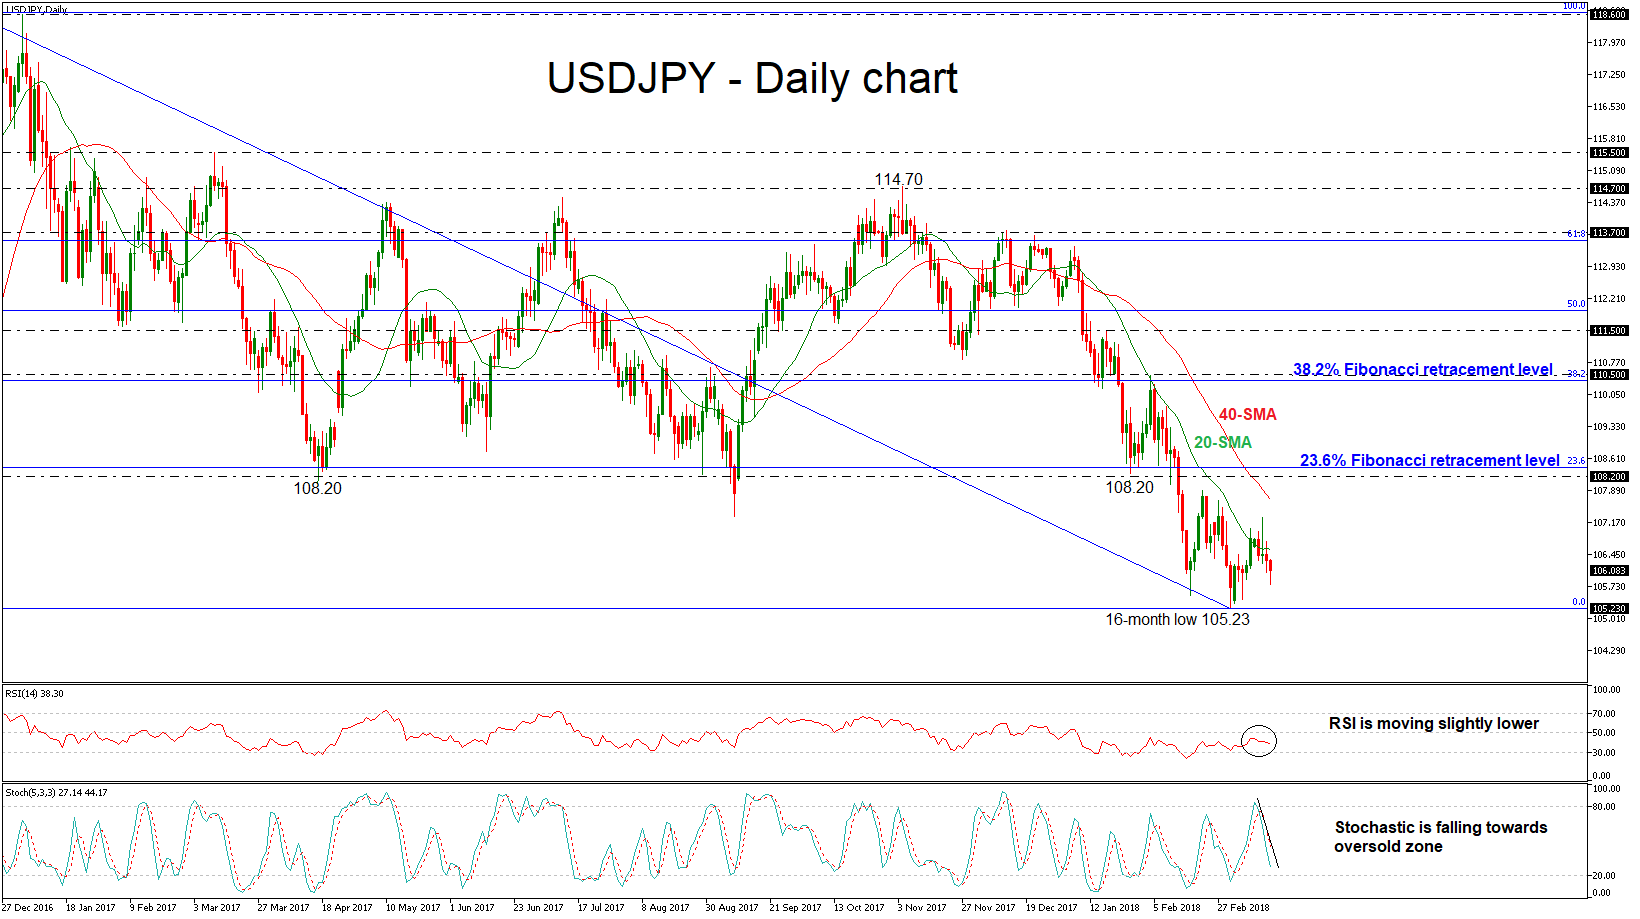 USD/JPY 15 MAR 2018 | EconAlerts